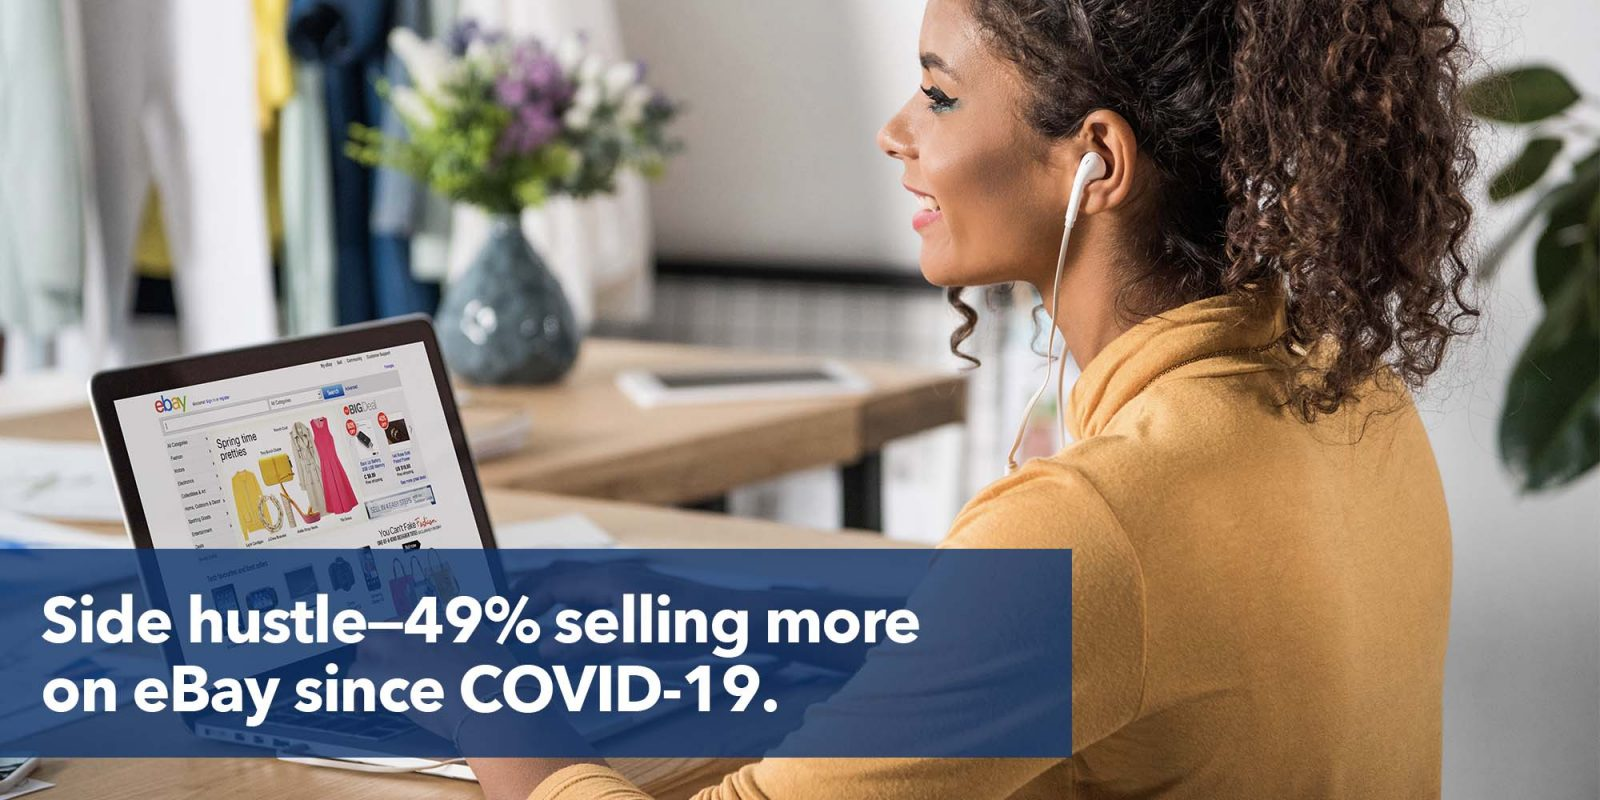 Side hustle—49% selling more on eBay since COVID-19.